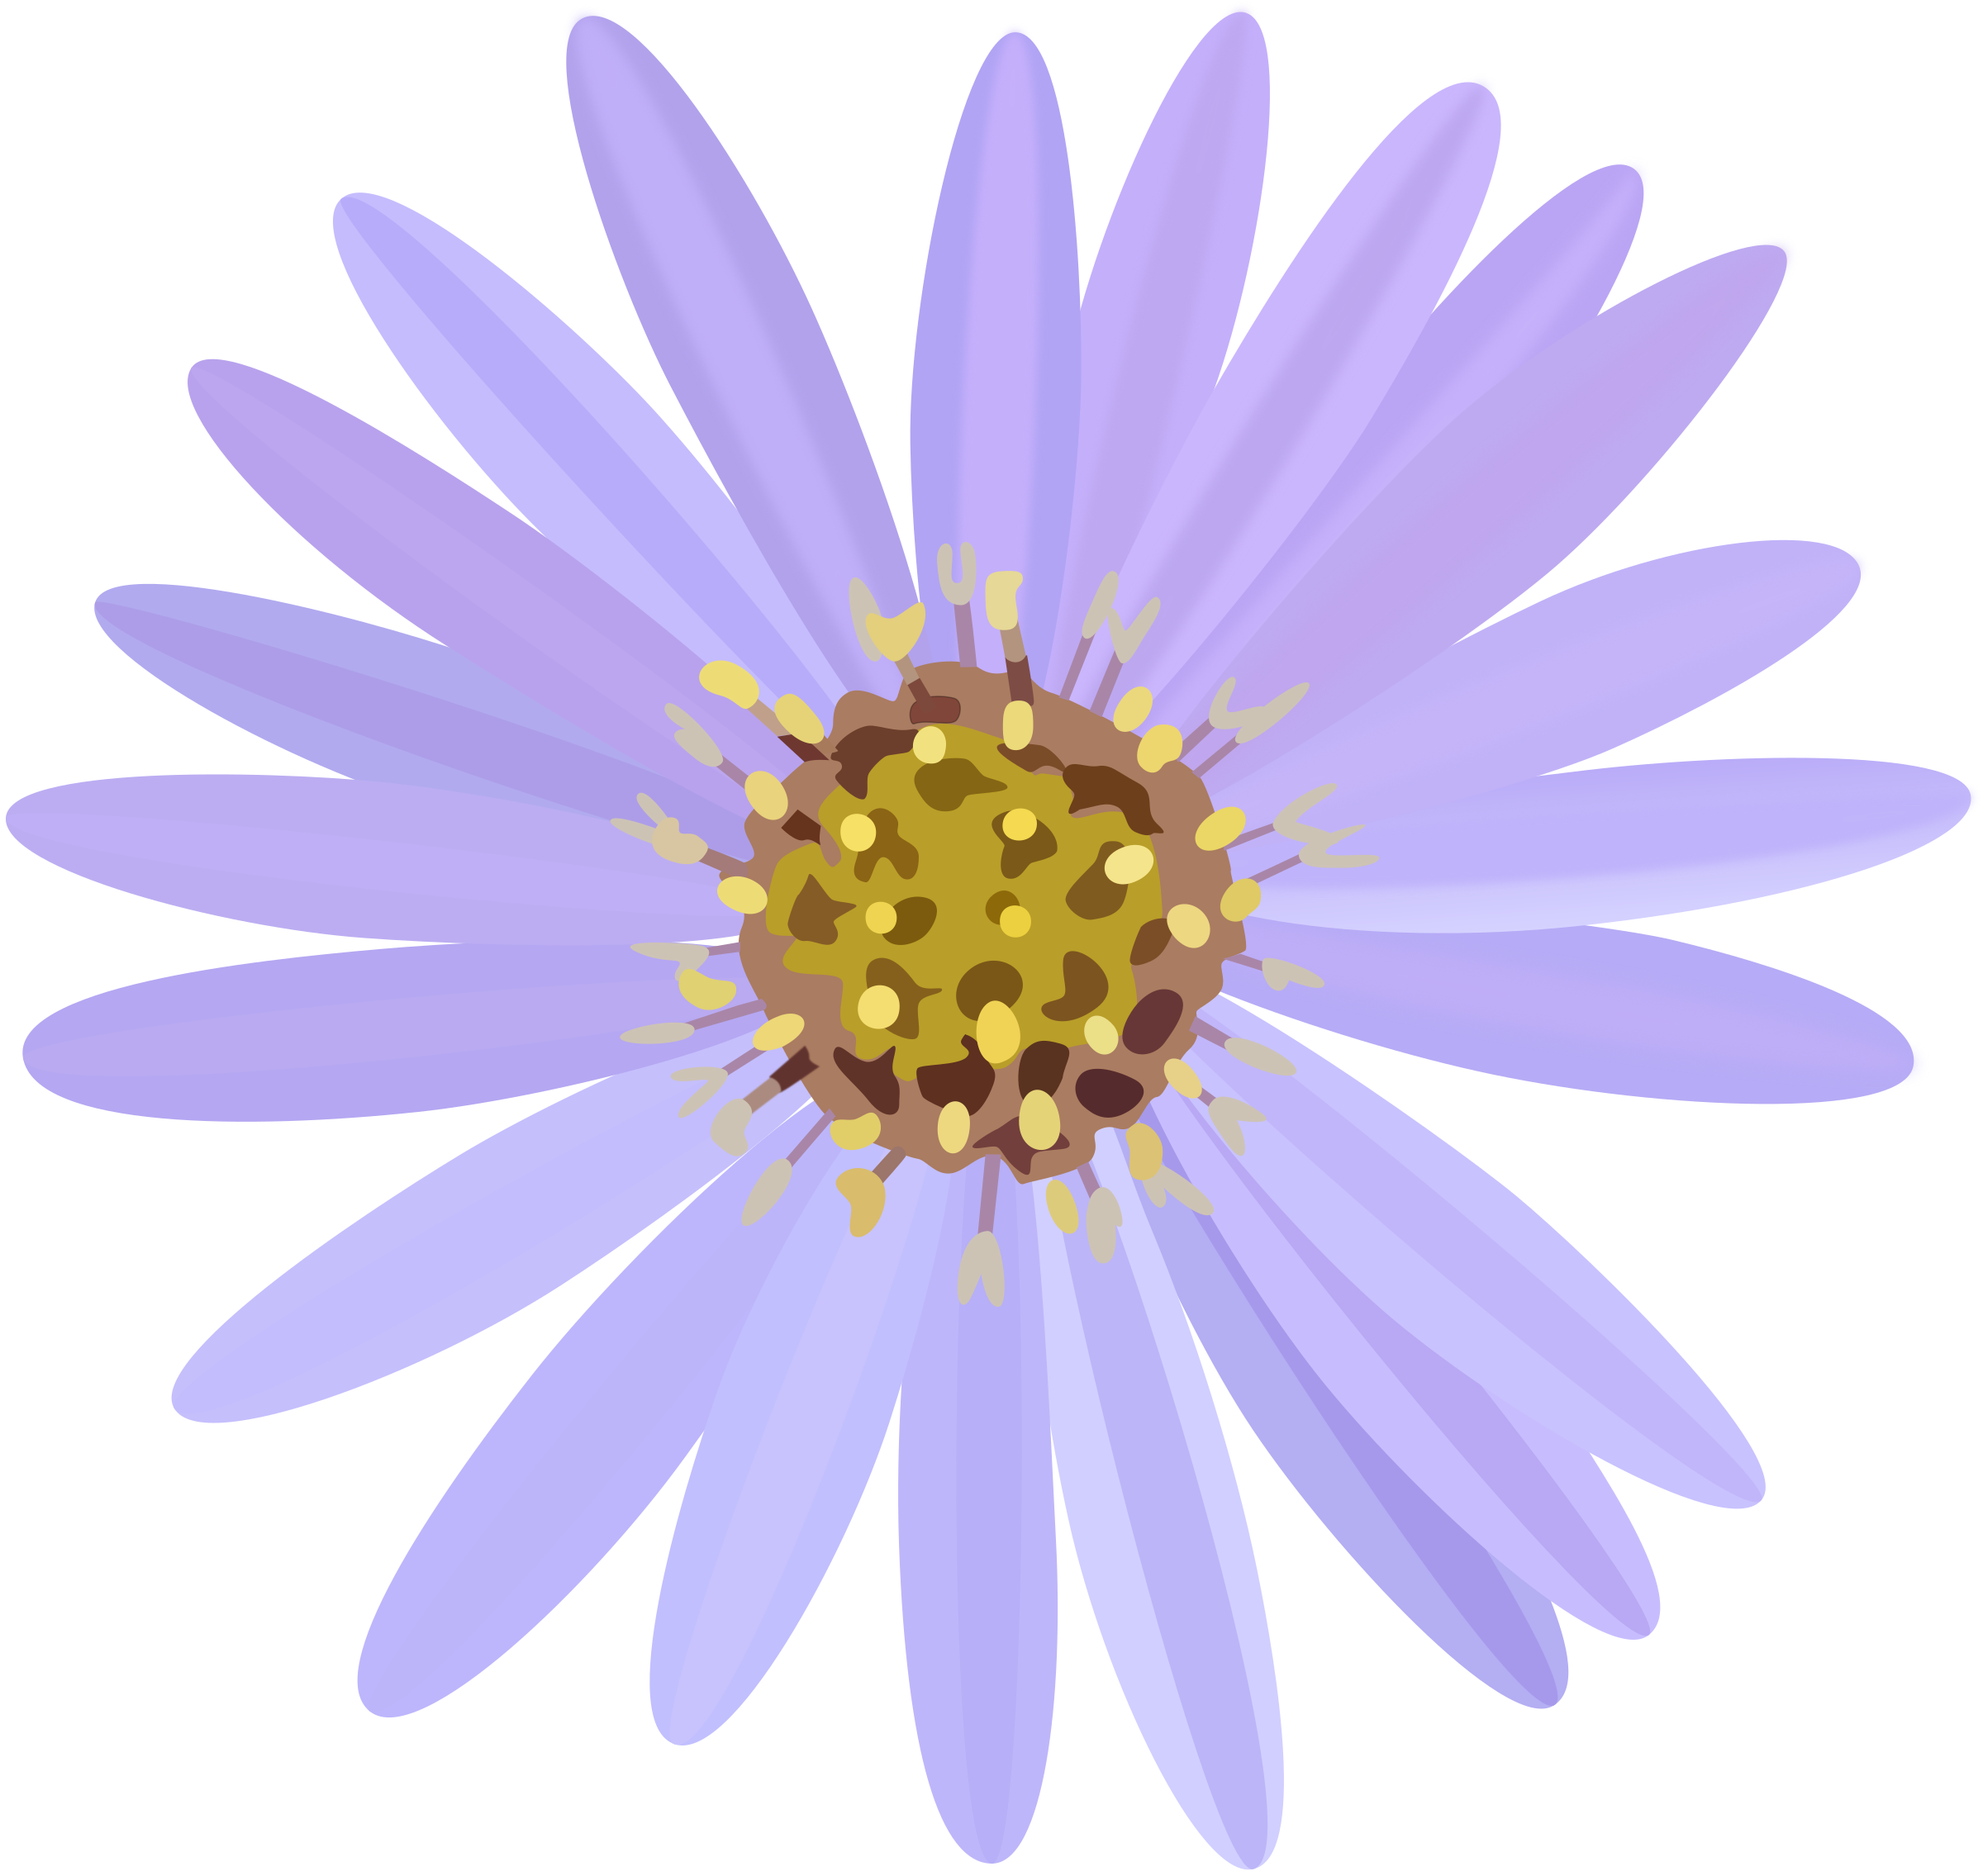 Aster flower clipart image black and white stock Clipart - aster image black and white stock